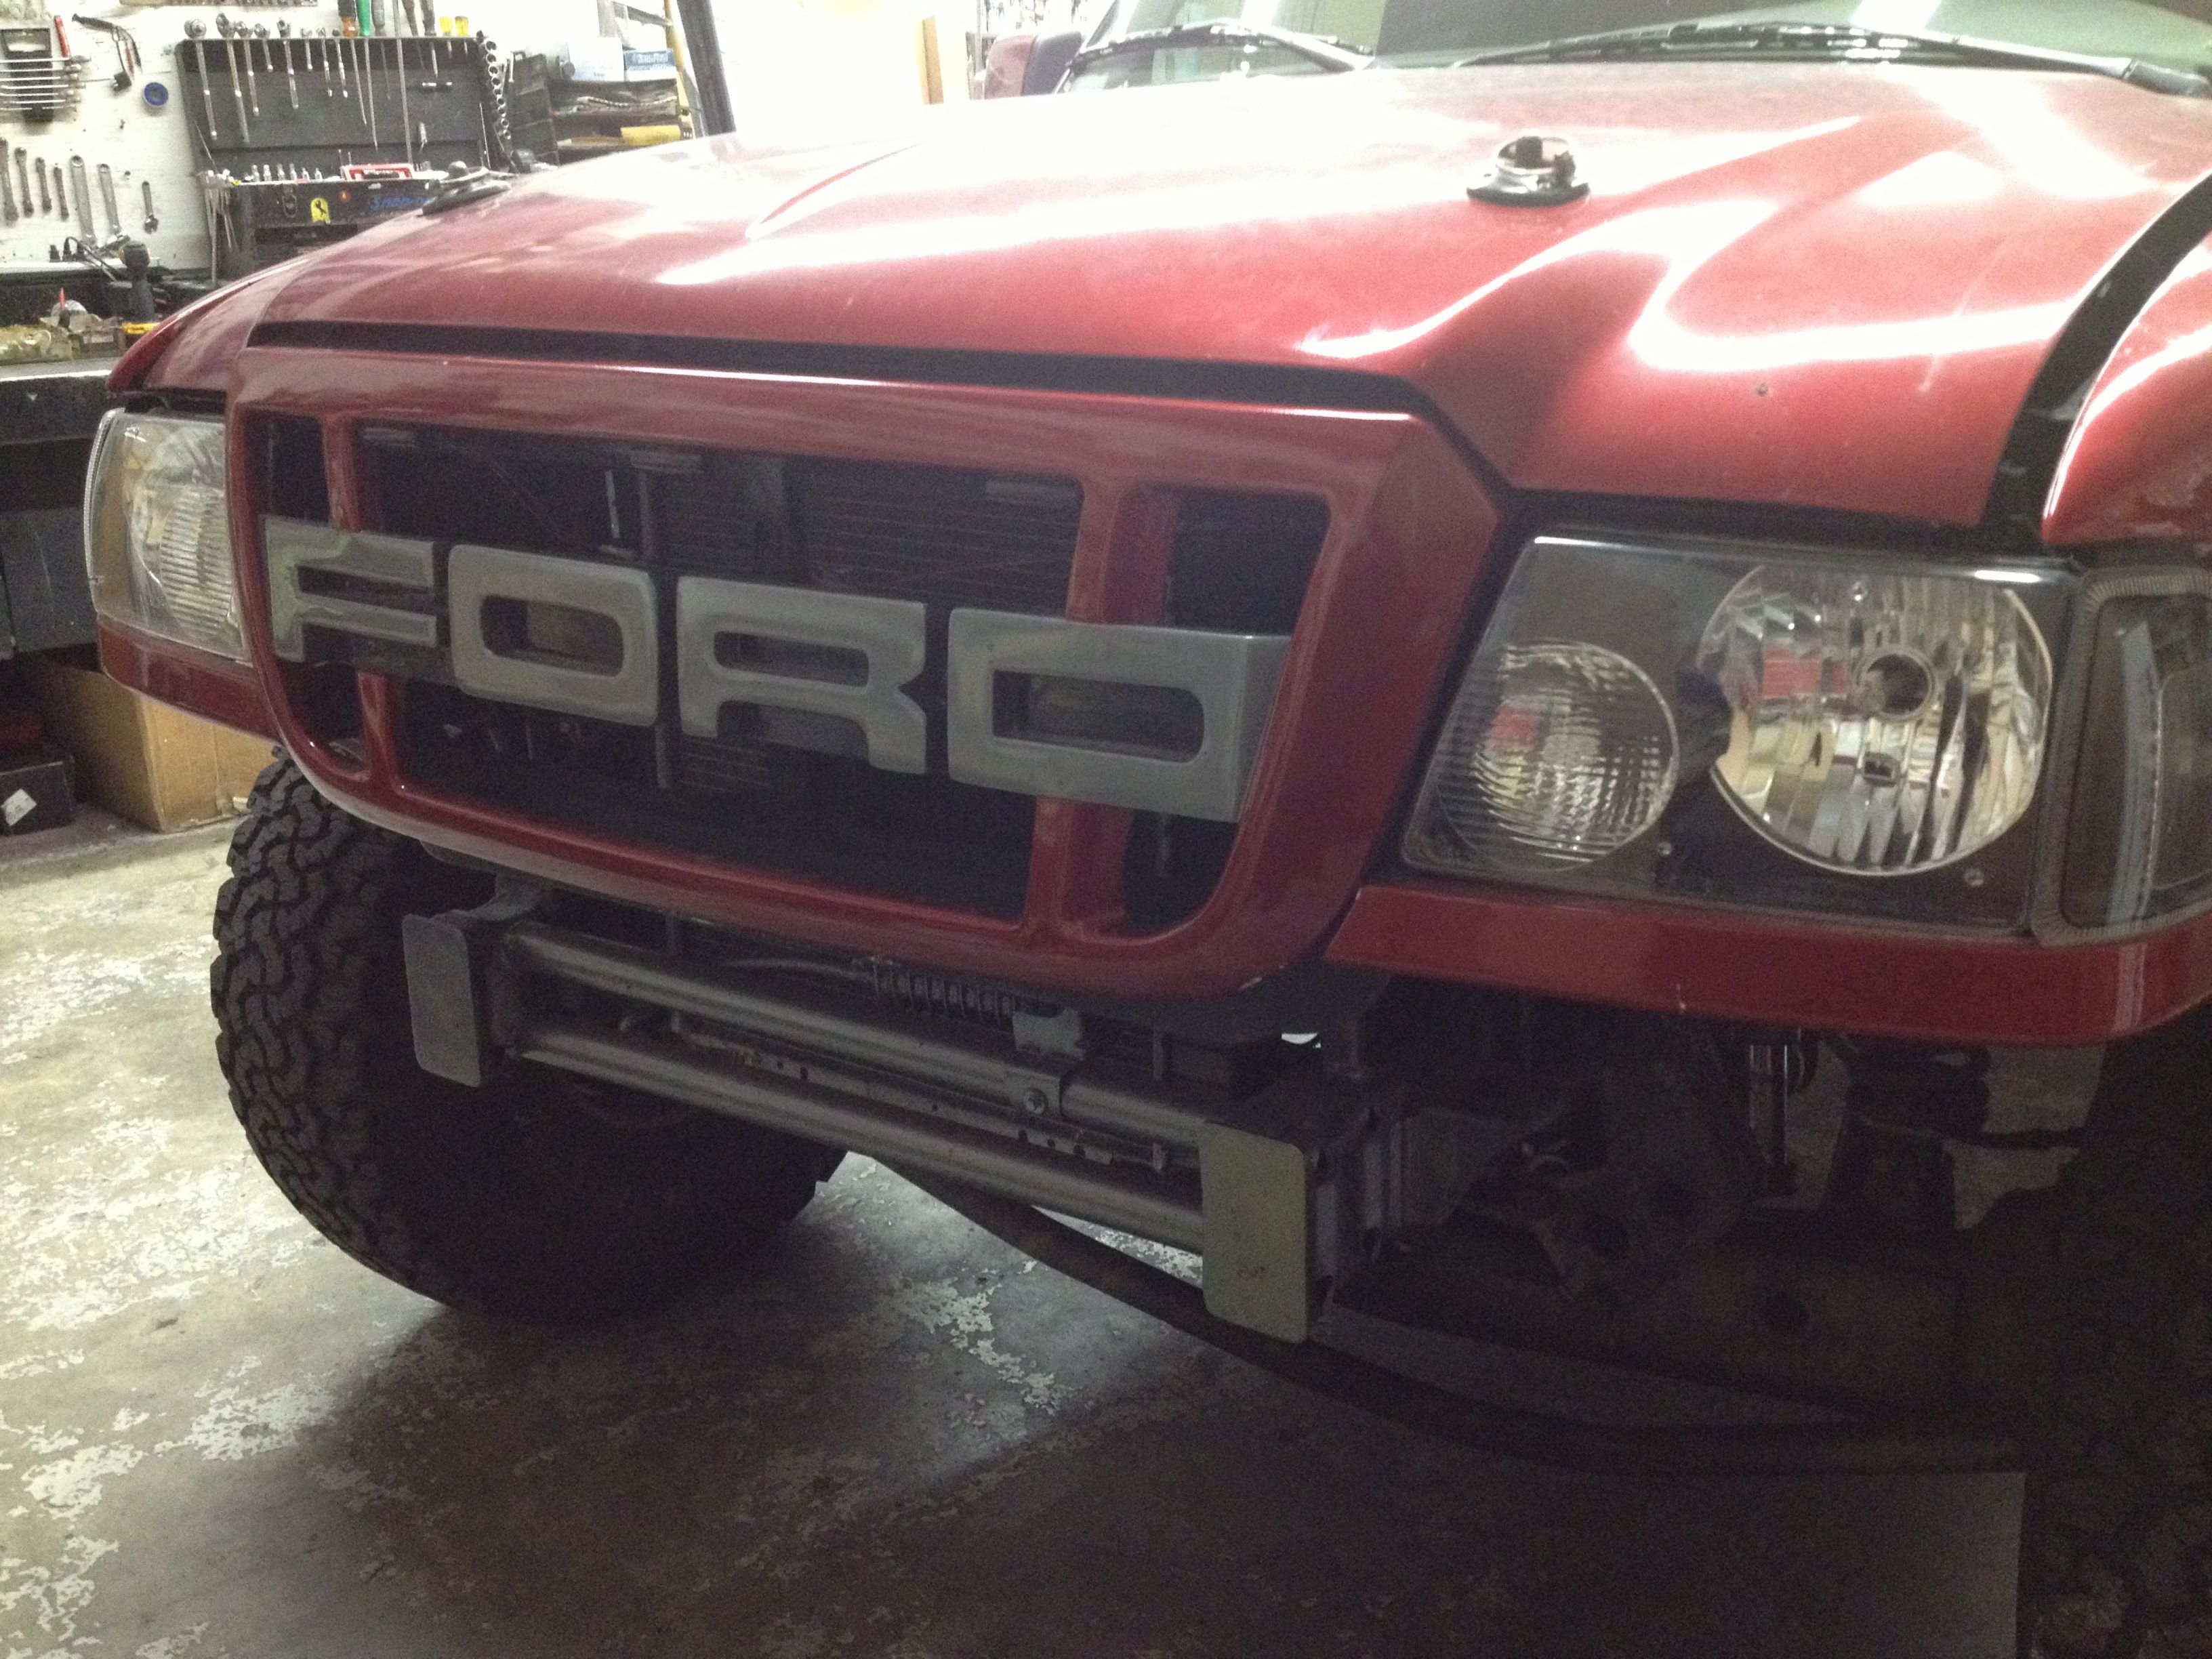 Custom Ford Ranger Grill Want This Grill With Images Ford